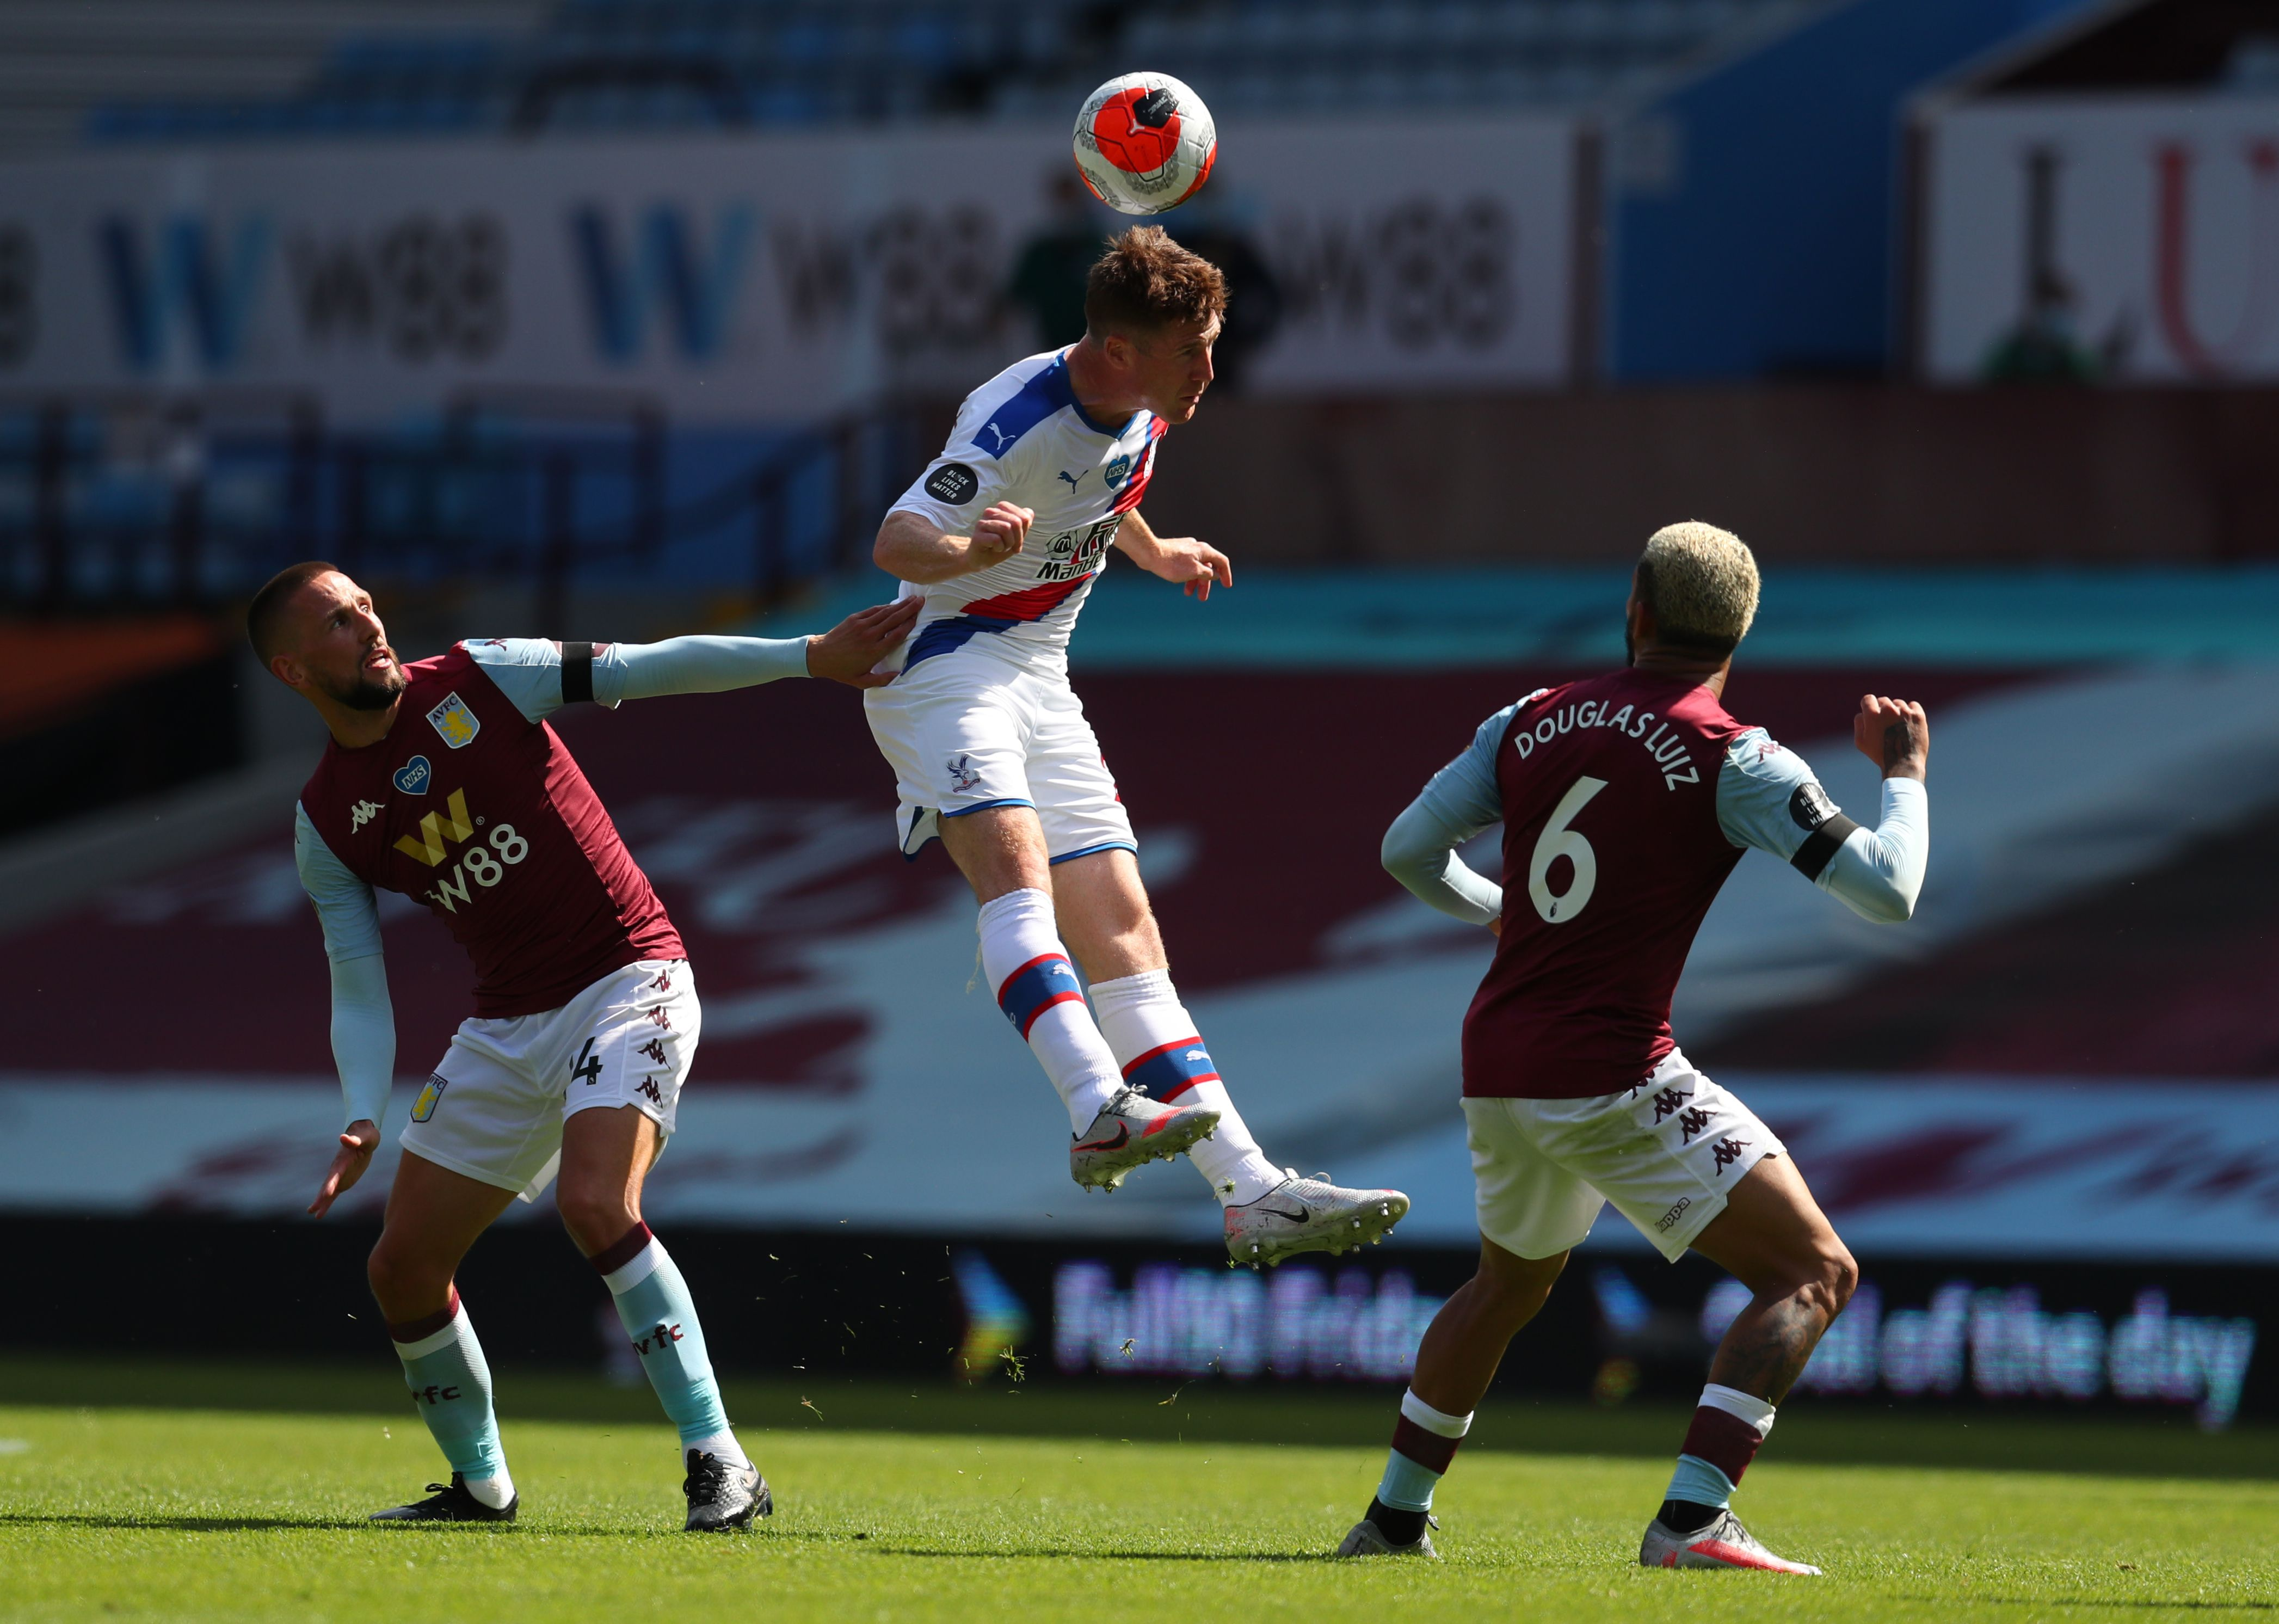 4-3-3 Aston Villa Predicted Lineup Vs Leicester City (Aston Villa players are in action in the picture)